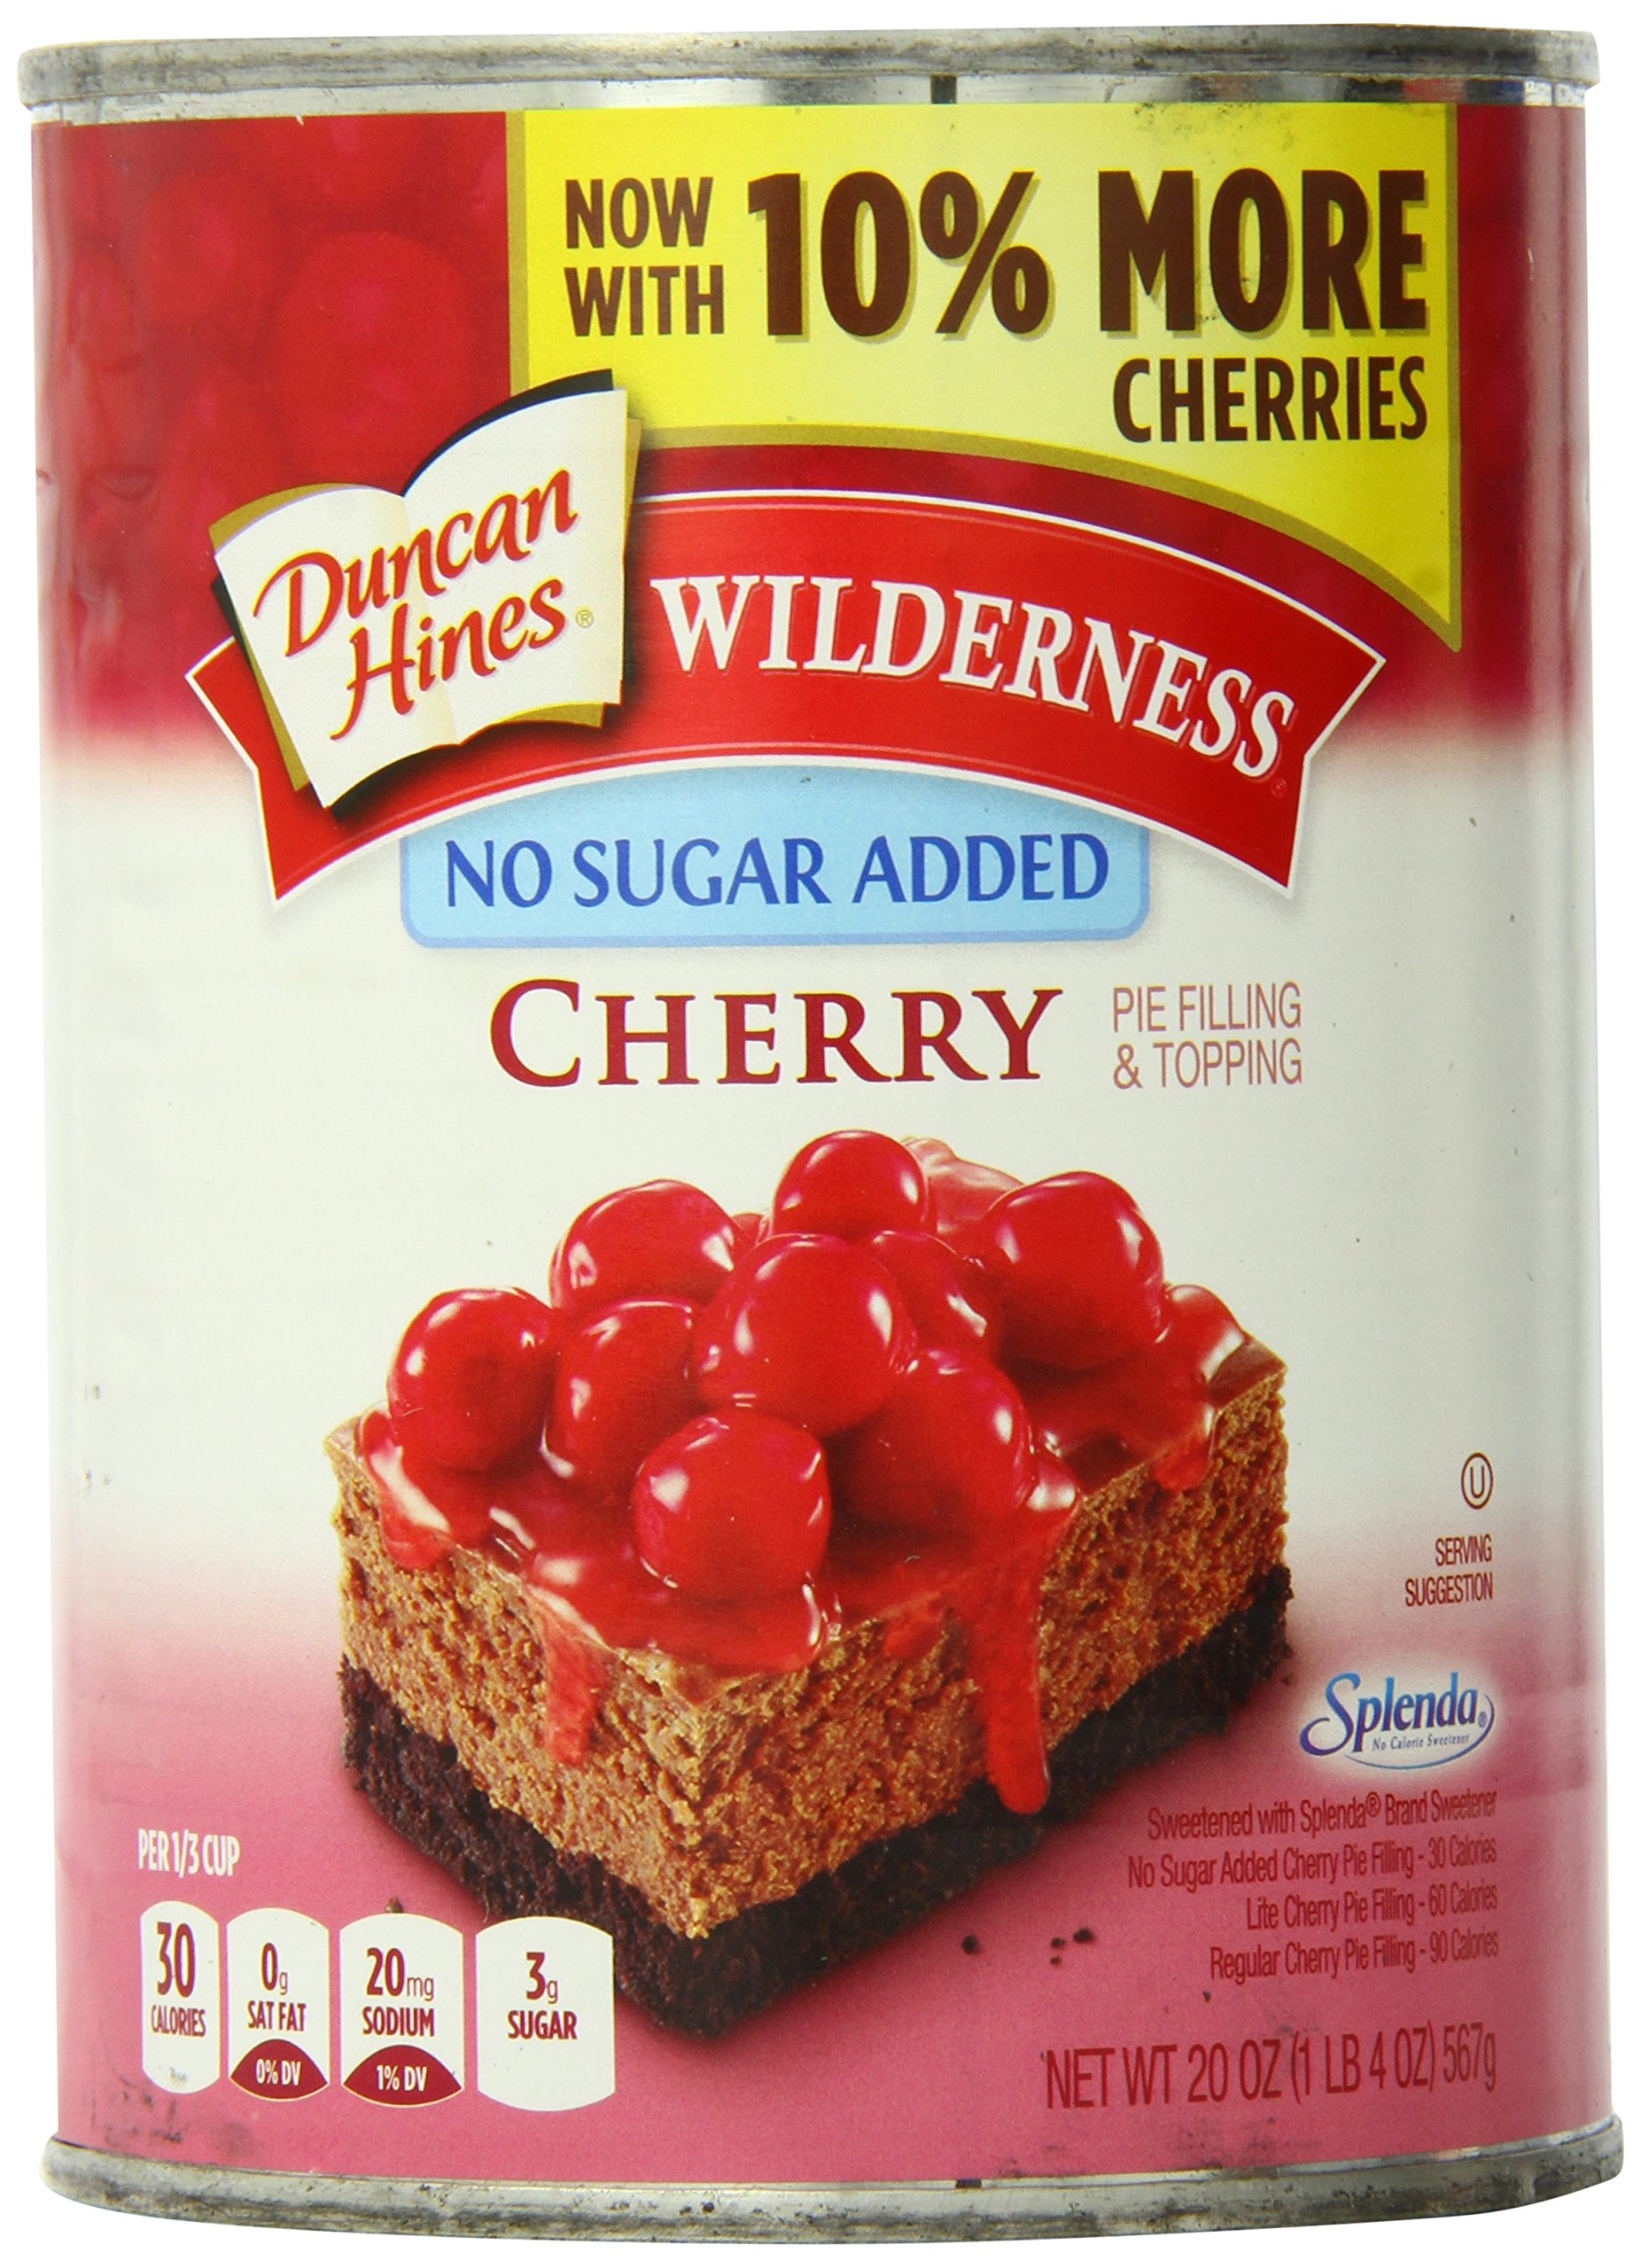 Wilderness No Sugar Added Pie Filling & Topping, Cherry, 20 Ounce (Pack of 12) by Wilderness (Image #1)